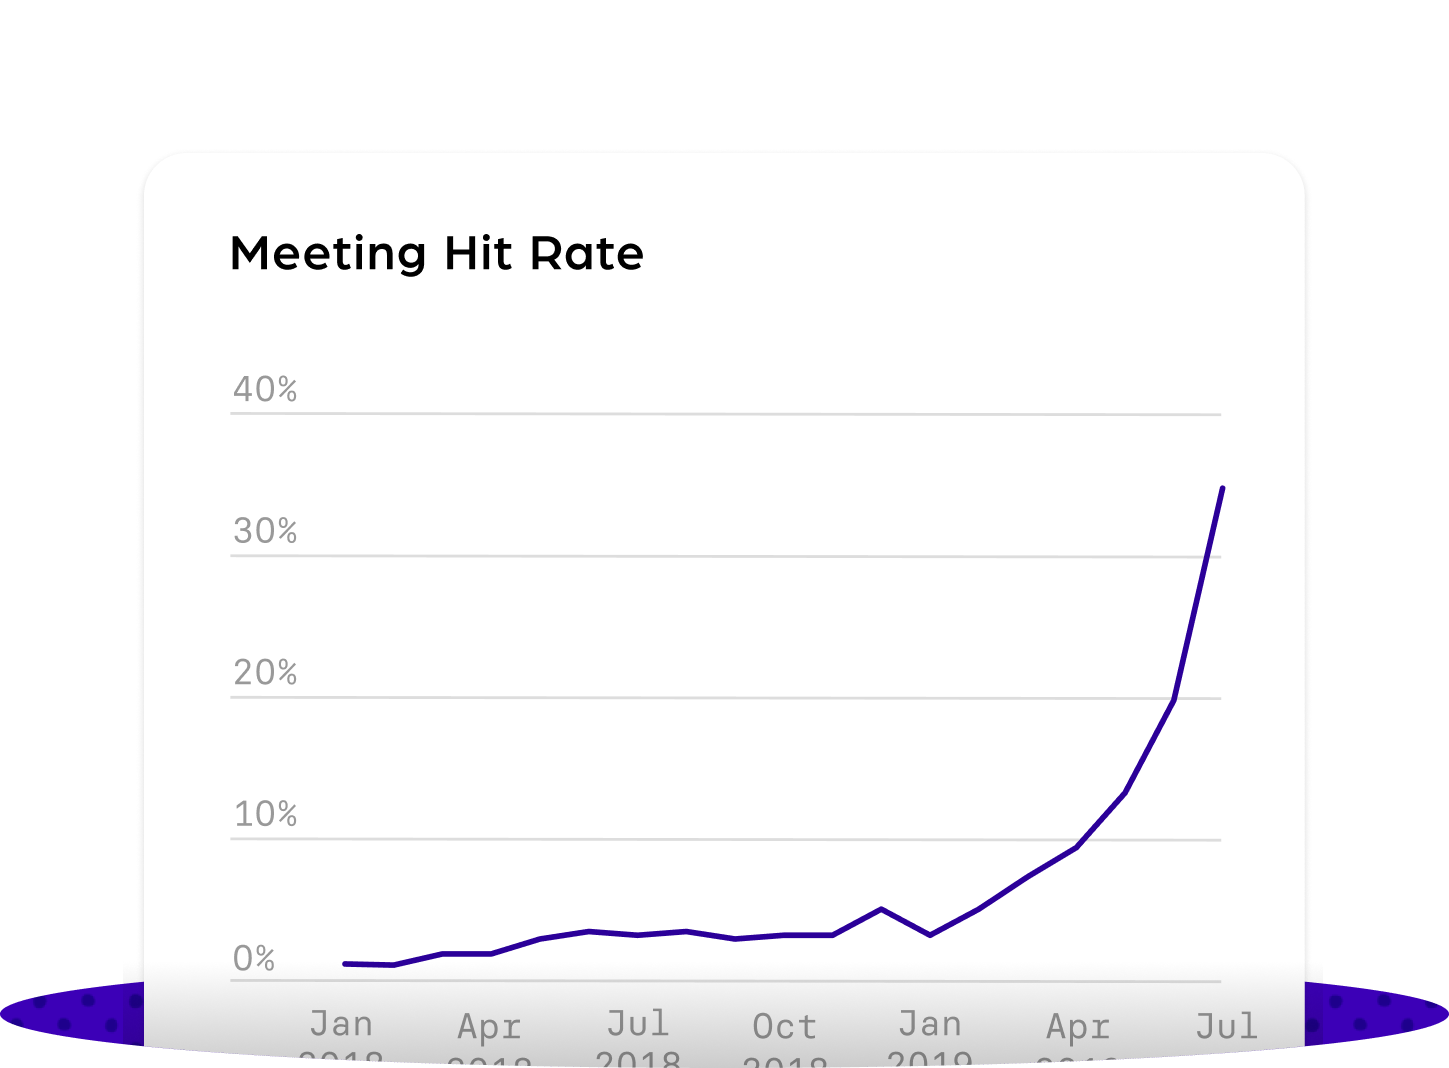 Meeting Hit Rate@3x